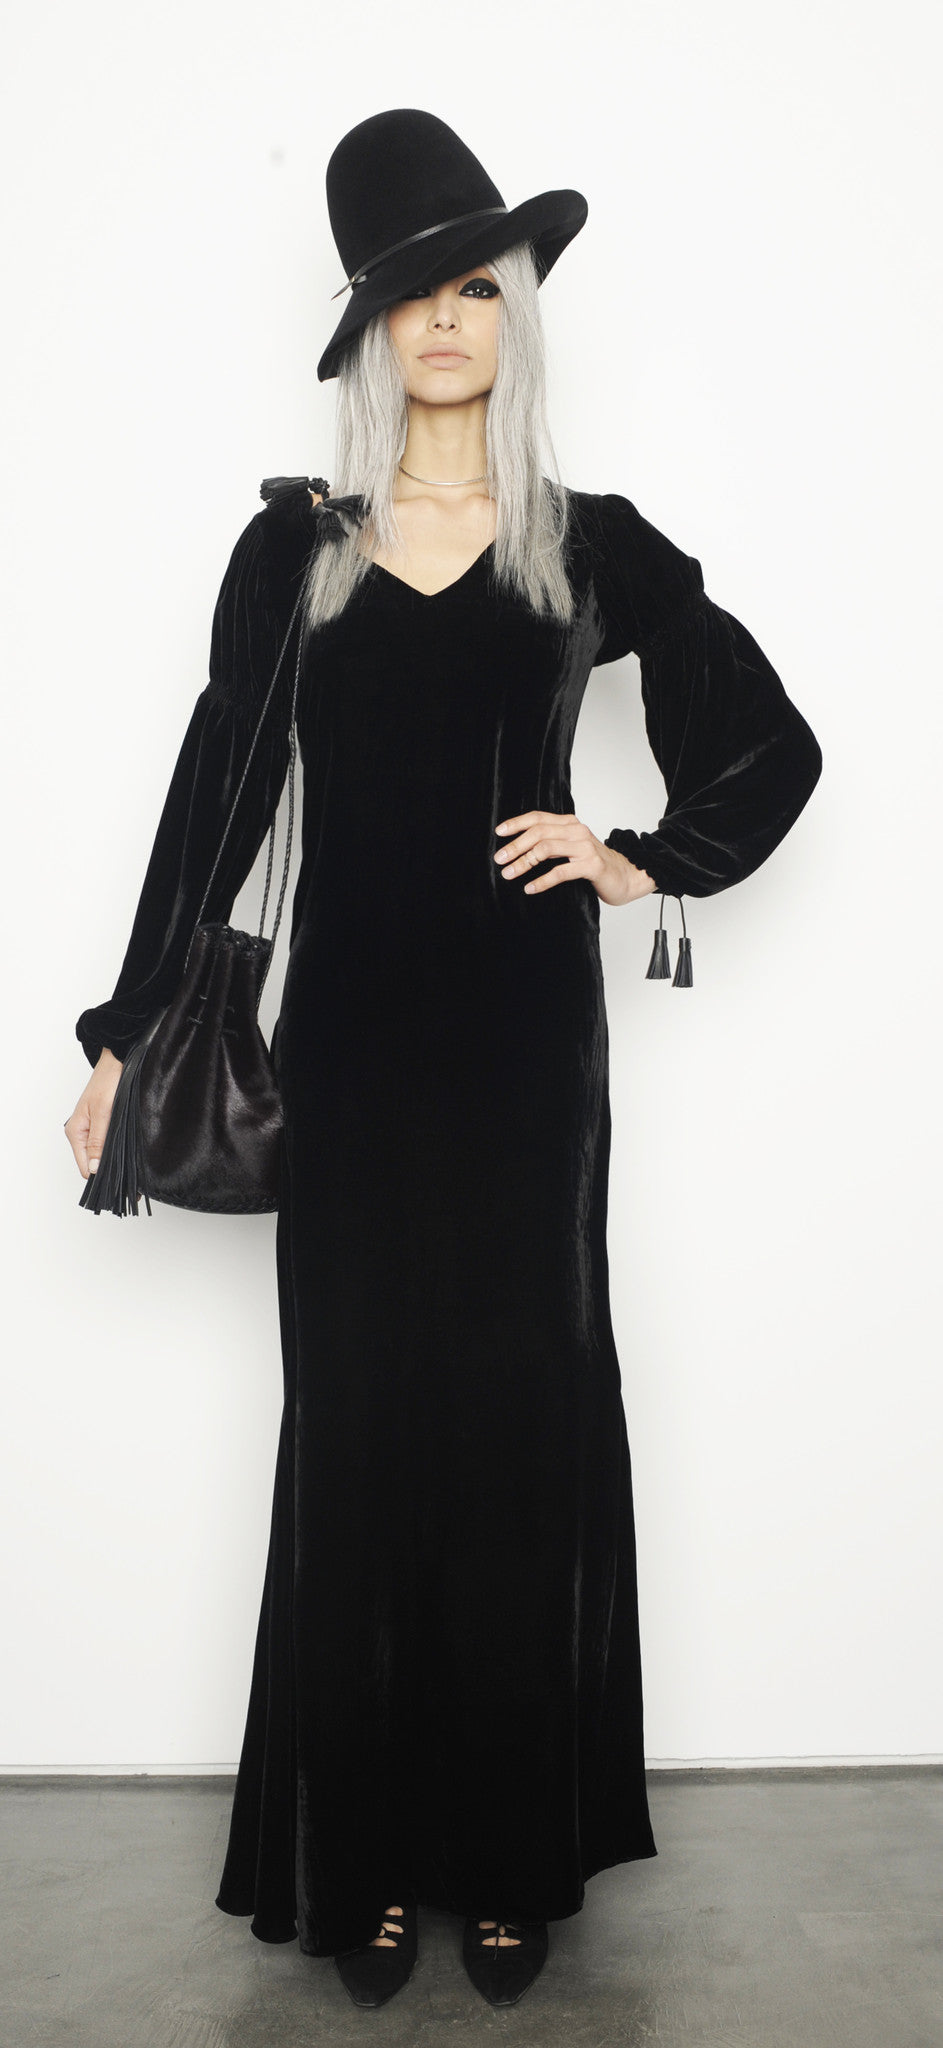 Monic IMG model Wendy Nichol Clothing Fashion Designer Runway Show AW15 Queen of Thieves Black Silk Velvet Dress Renaissance Puff Sleeve Gray Grey Hair Girl Gangster Peaky Blinders Handmade in NYC Custom Tailoring Color Fabric Made to Measure